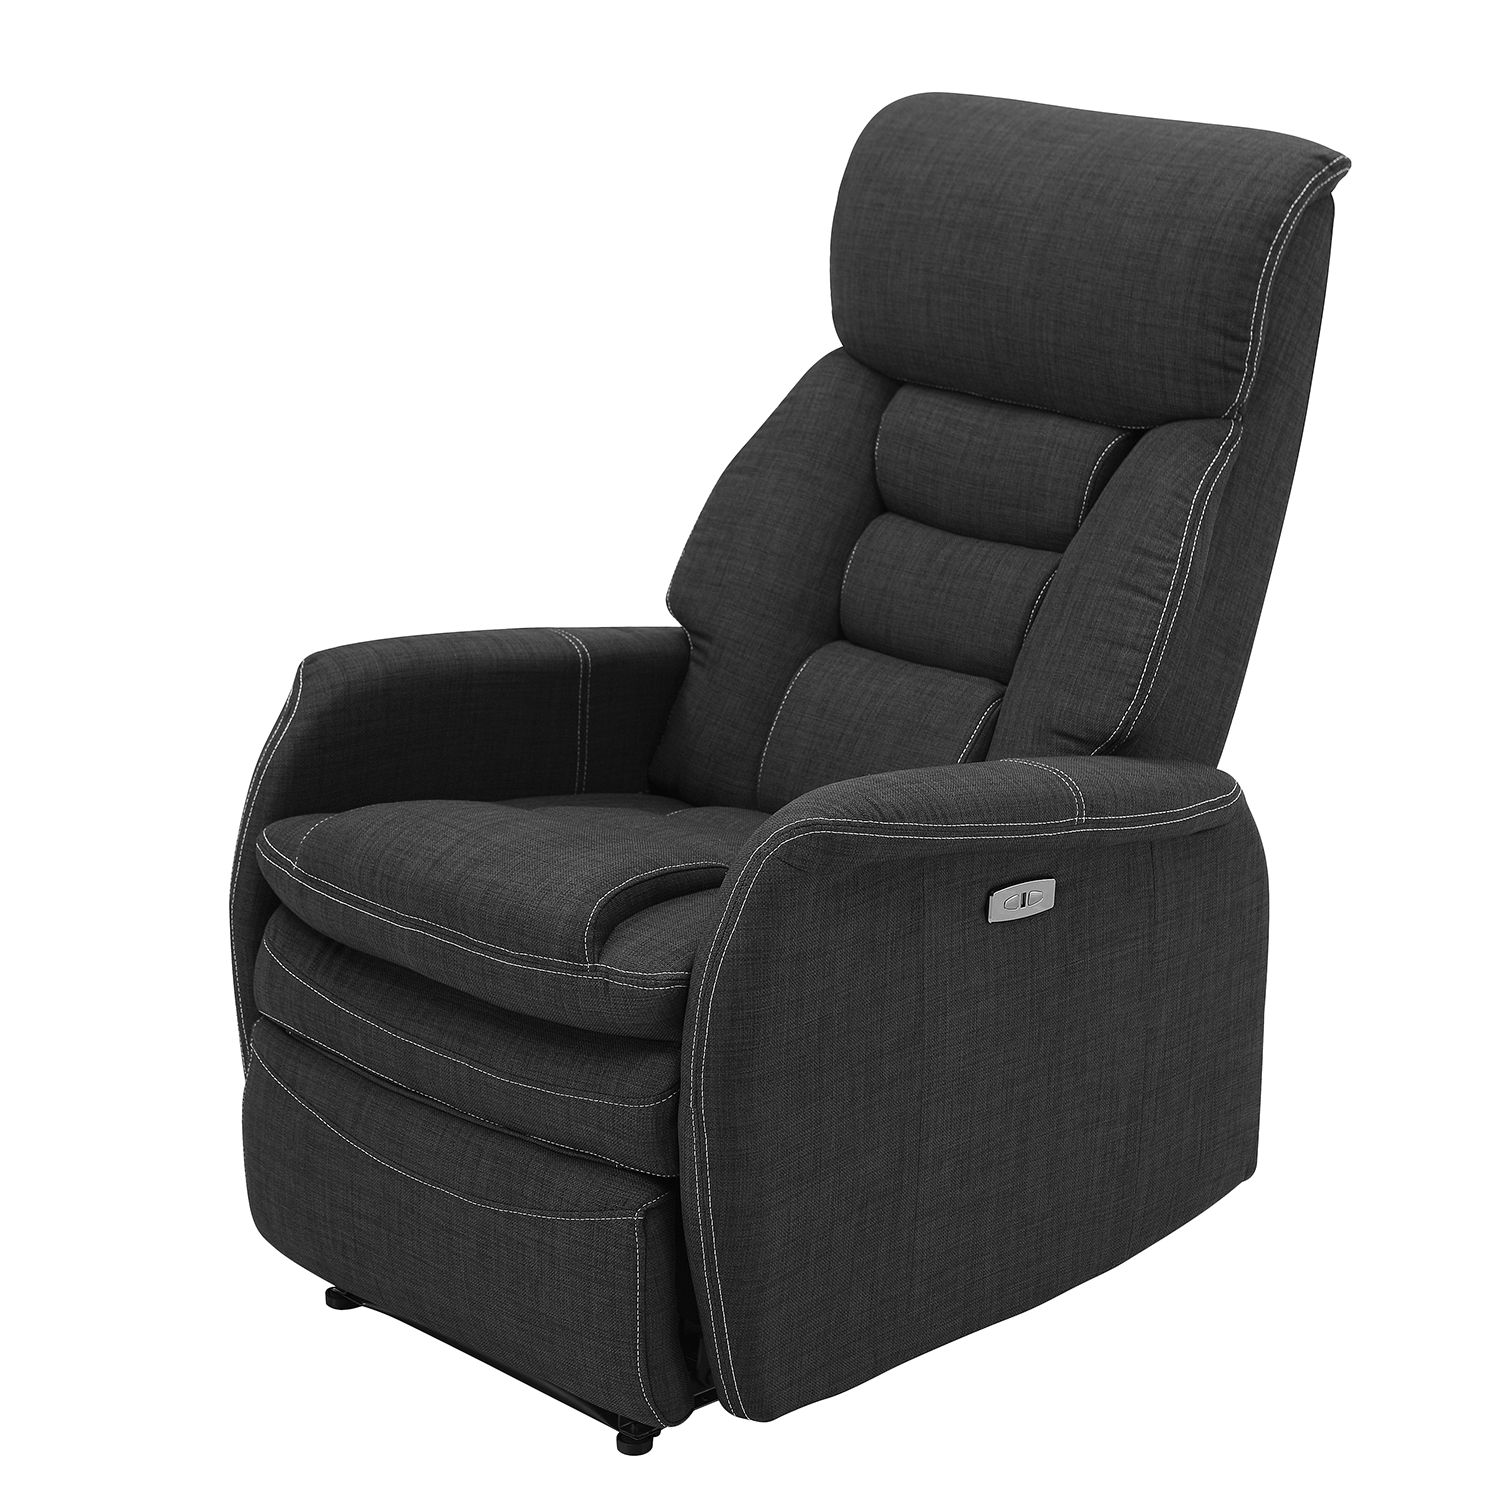 Relax Sessel Relaxsessel Suan Products Fernsehsessel Fernsehsessel Leder